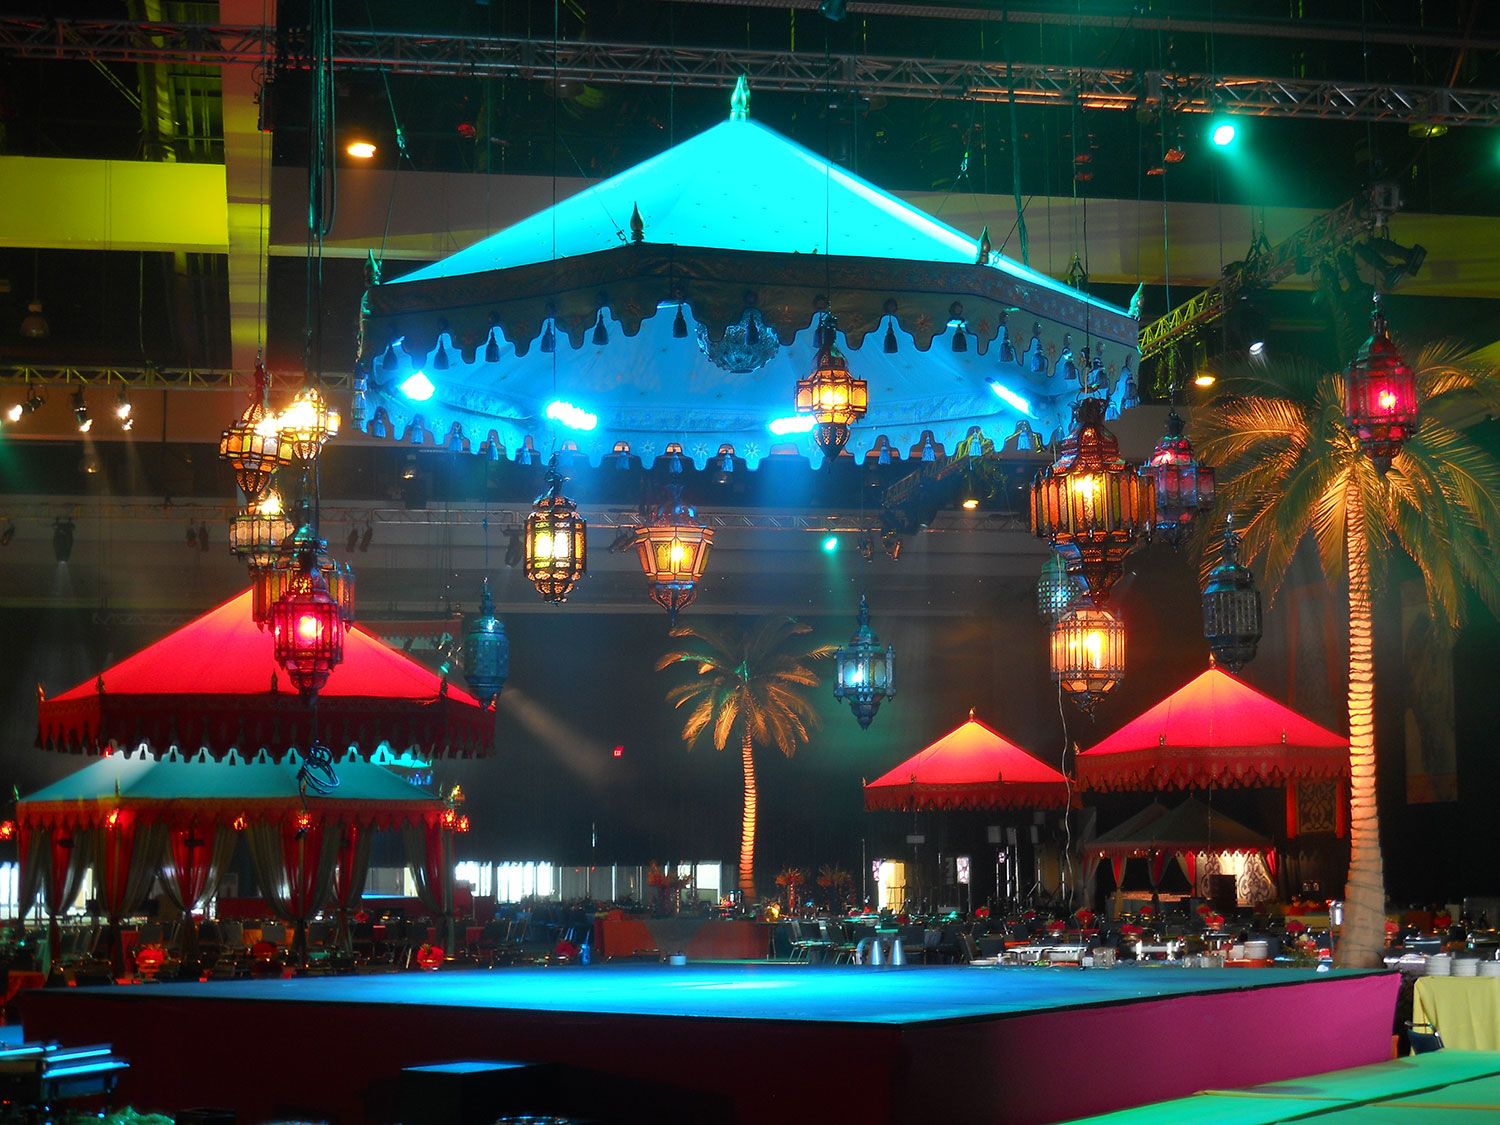 raj-tents-indian-theme-floating-canopies.jpg